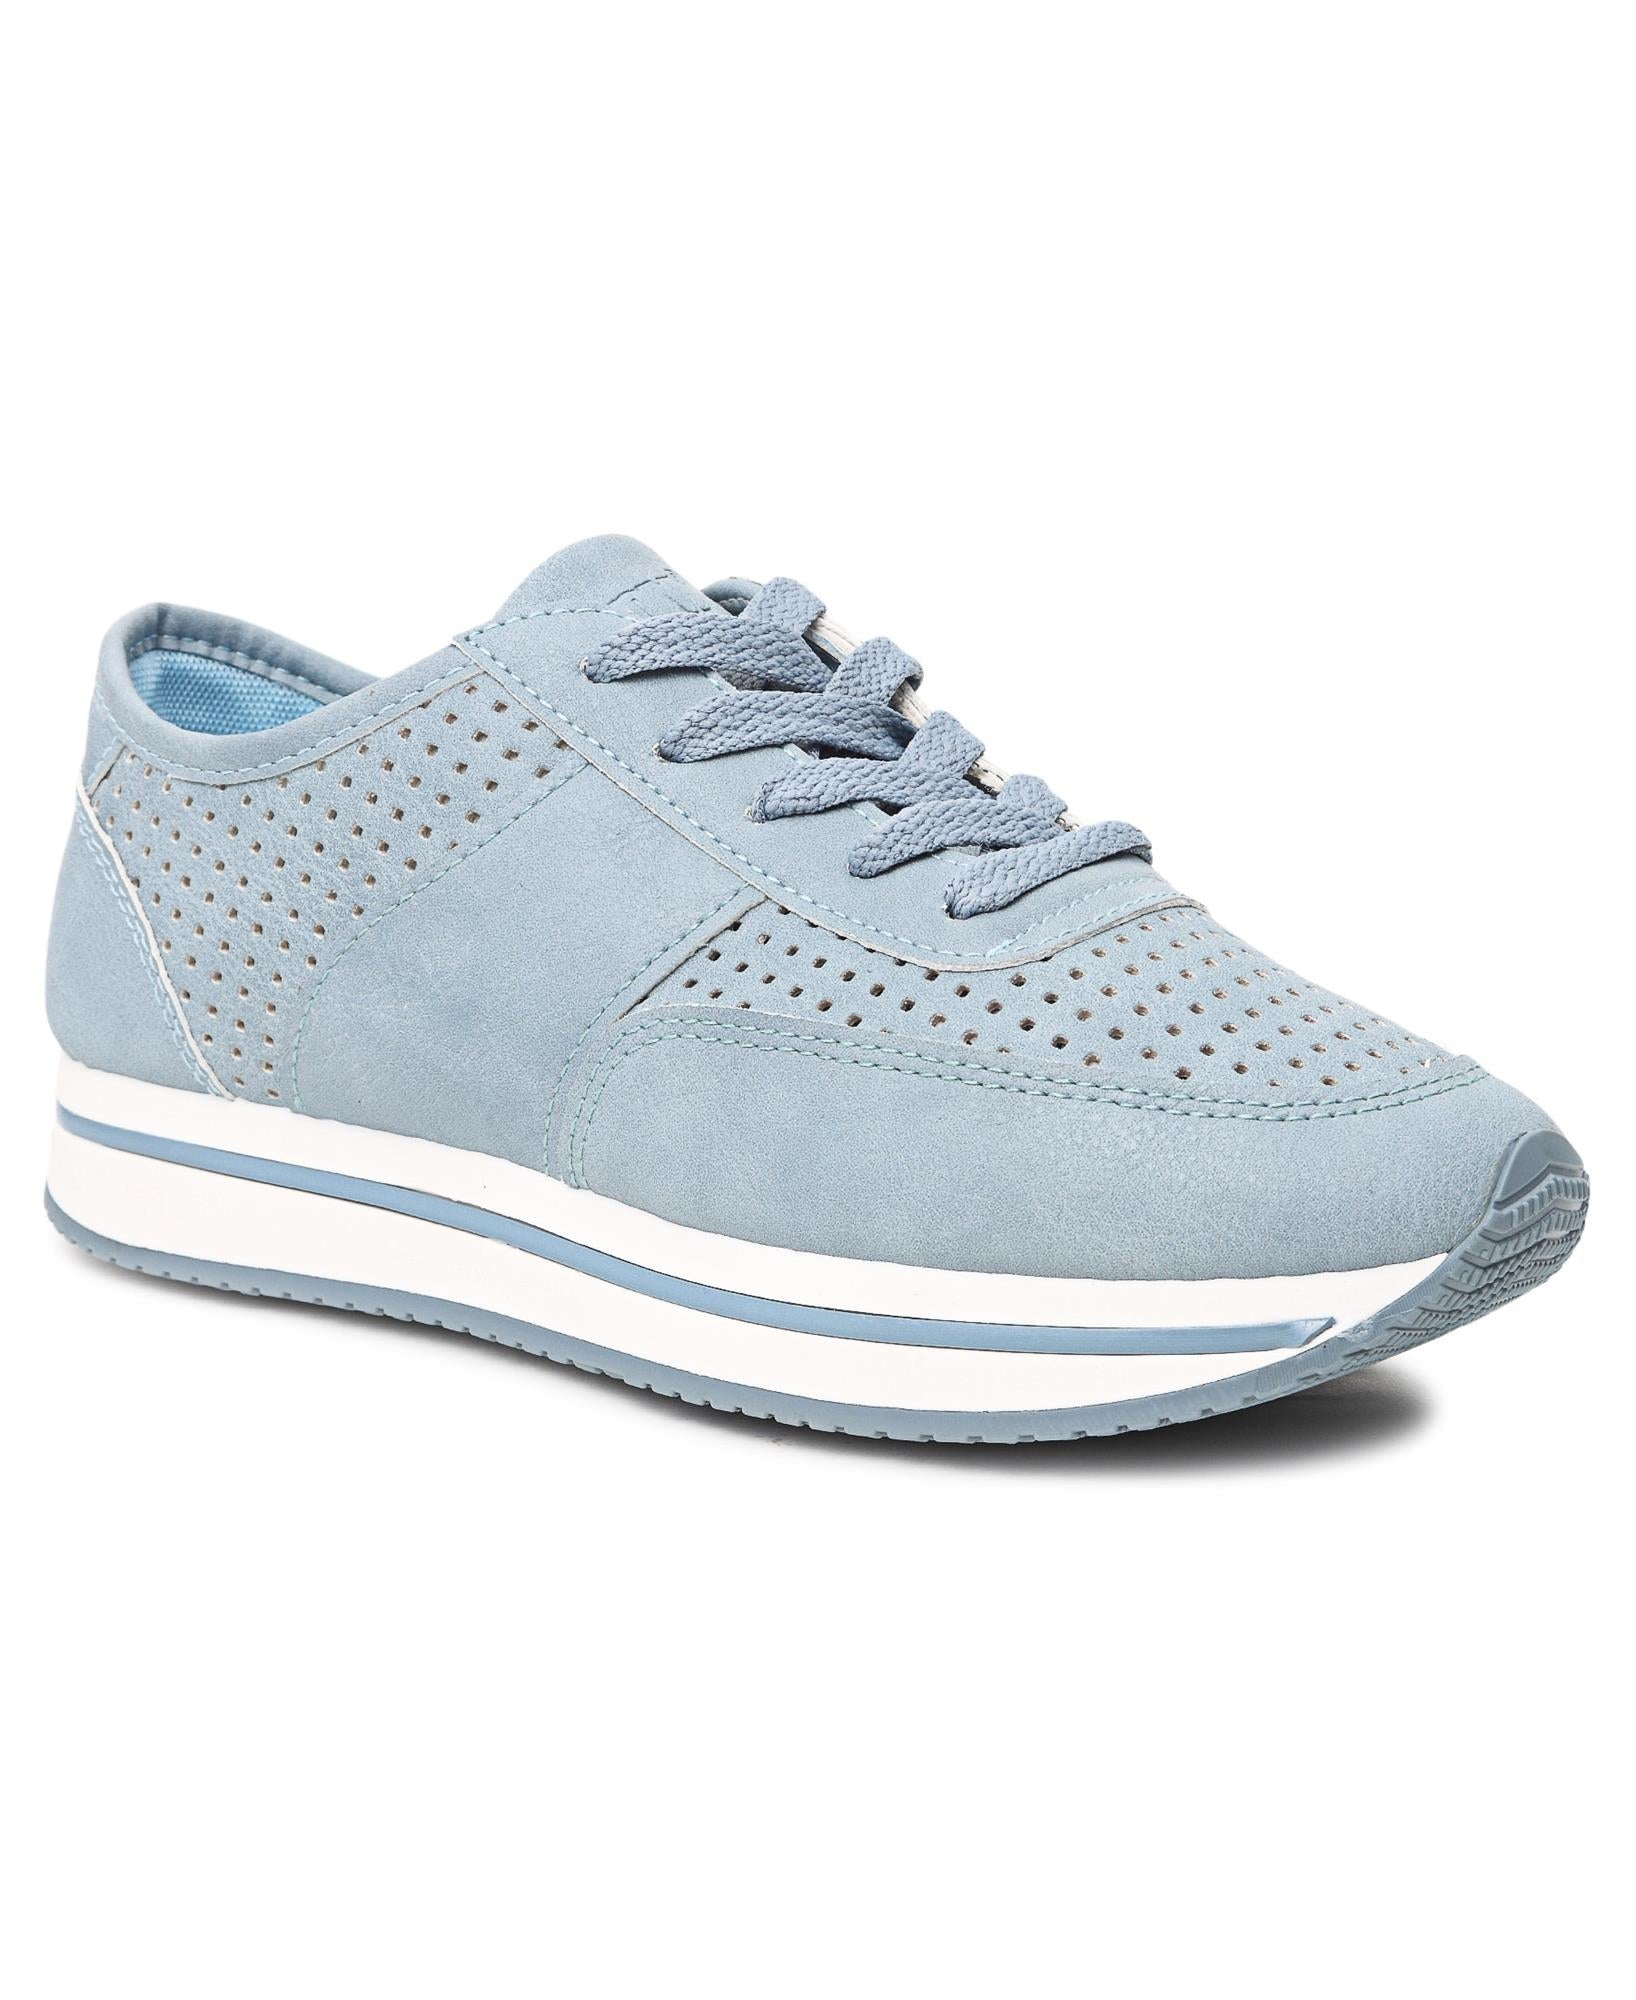 Ladies' Rock Low Punch Sneakers - Blue